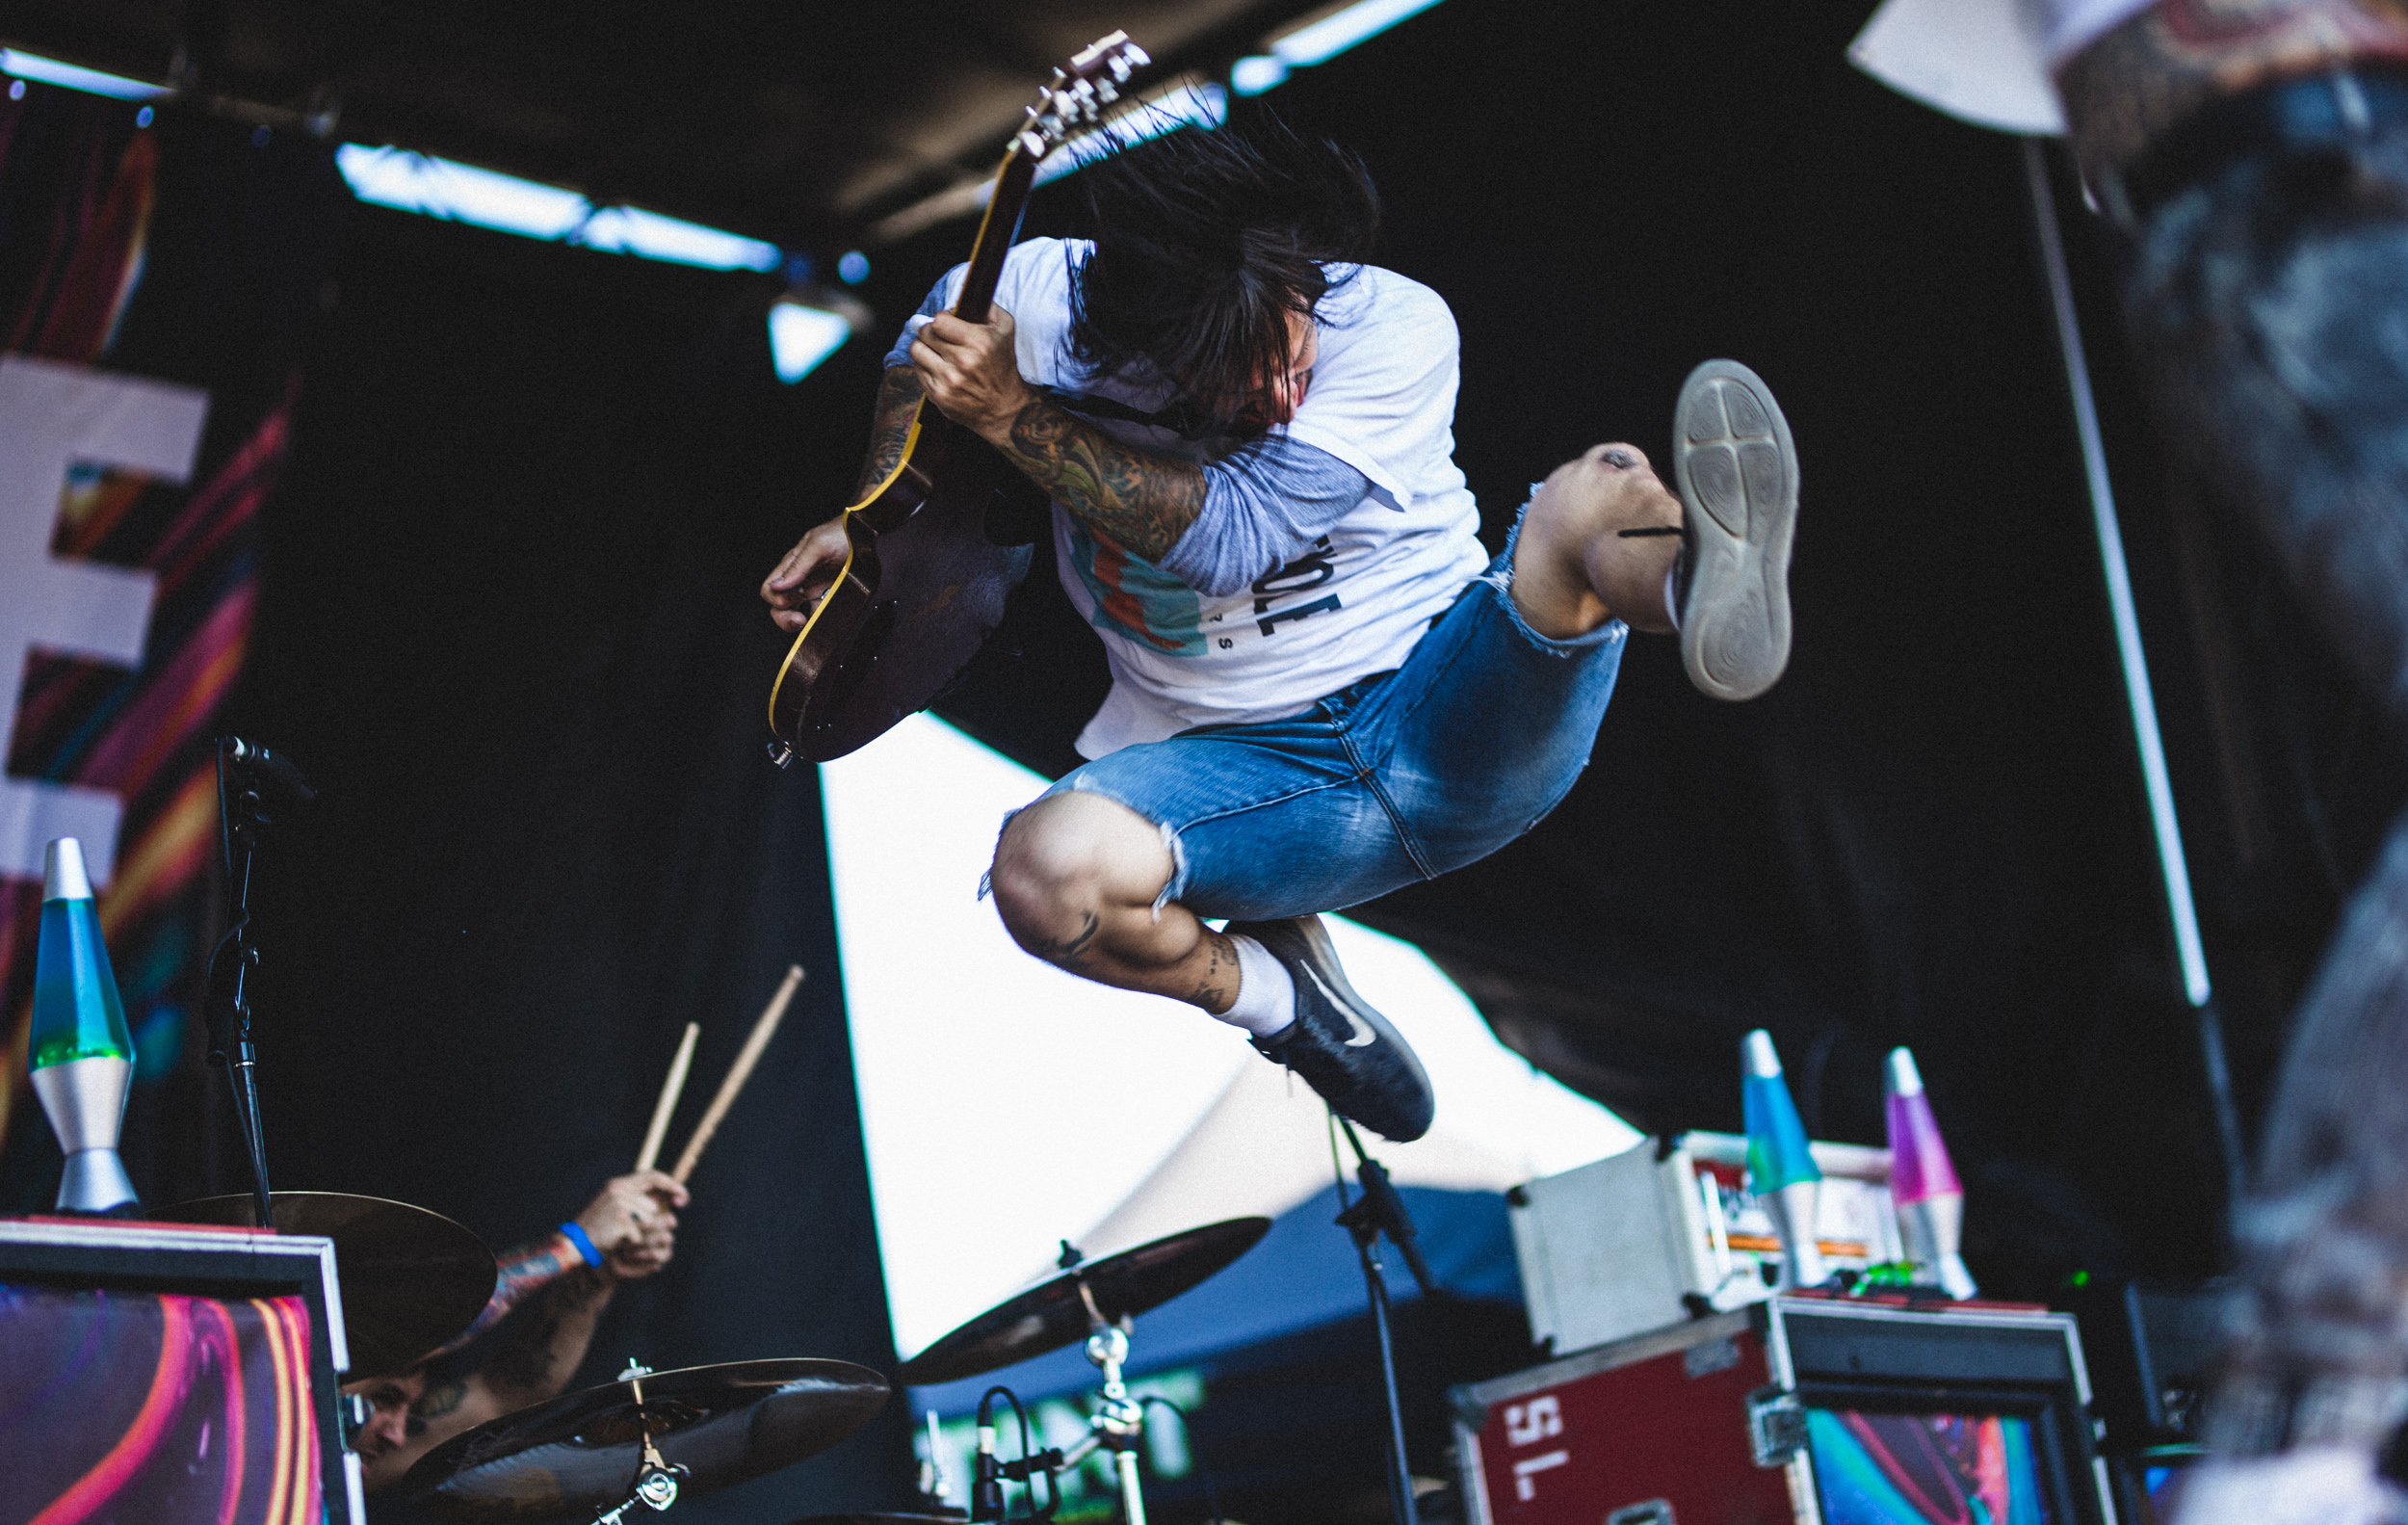 Jordan Keith of Every Time I Die at Warped Tour 2018